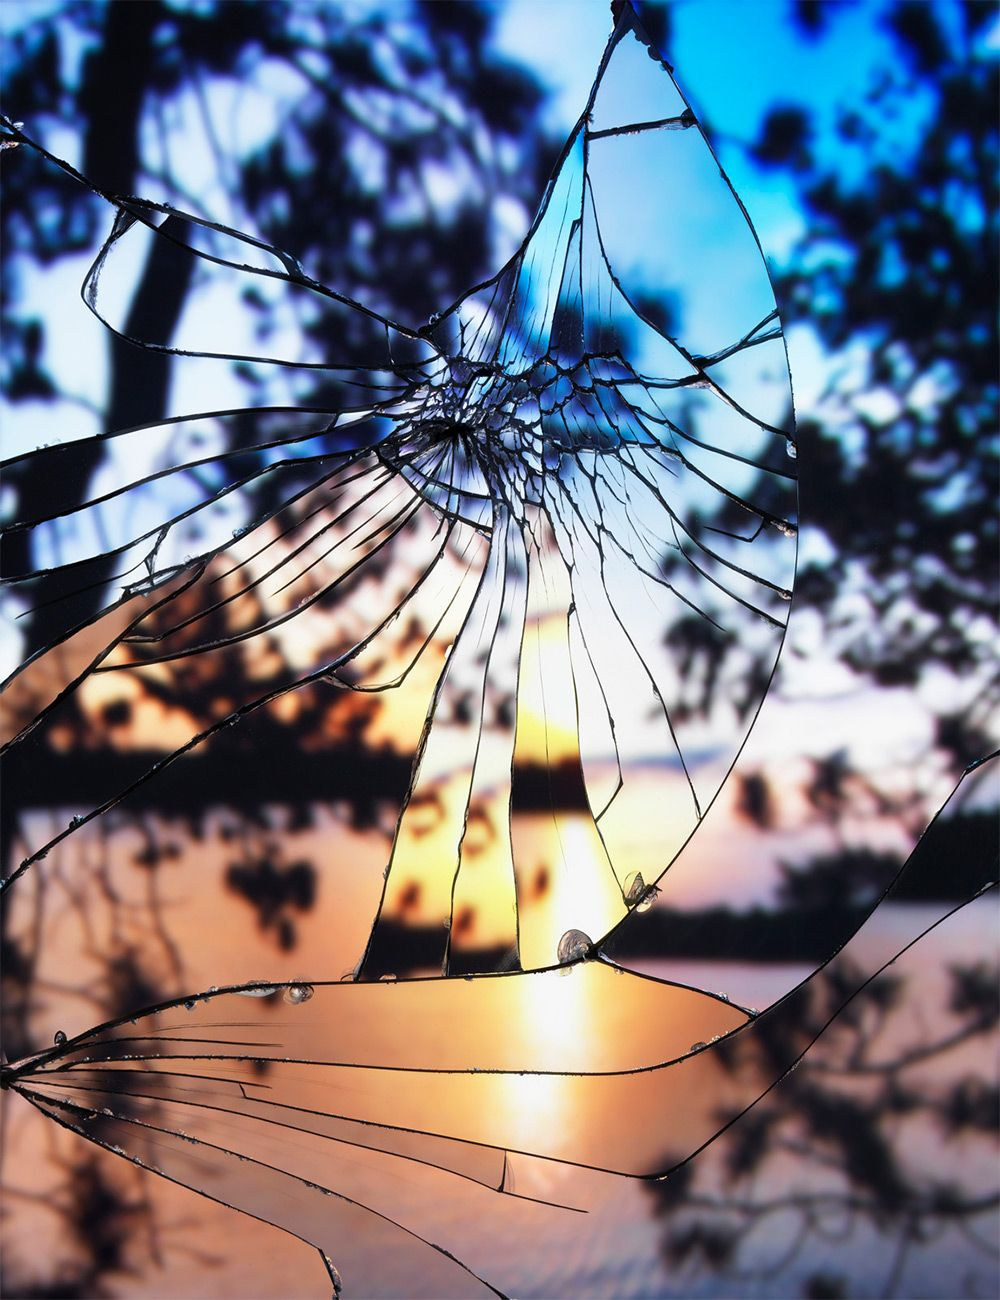 Photographs of Sunsets as Reflected through Shattered